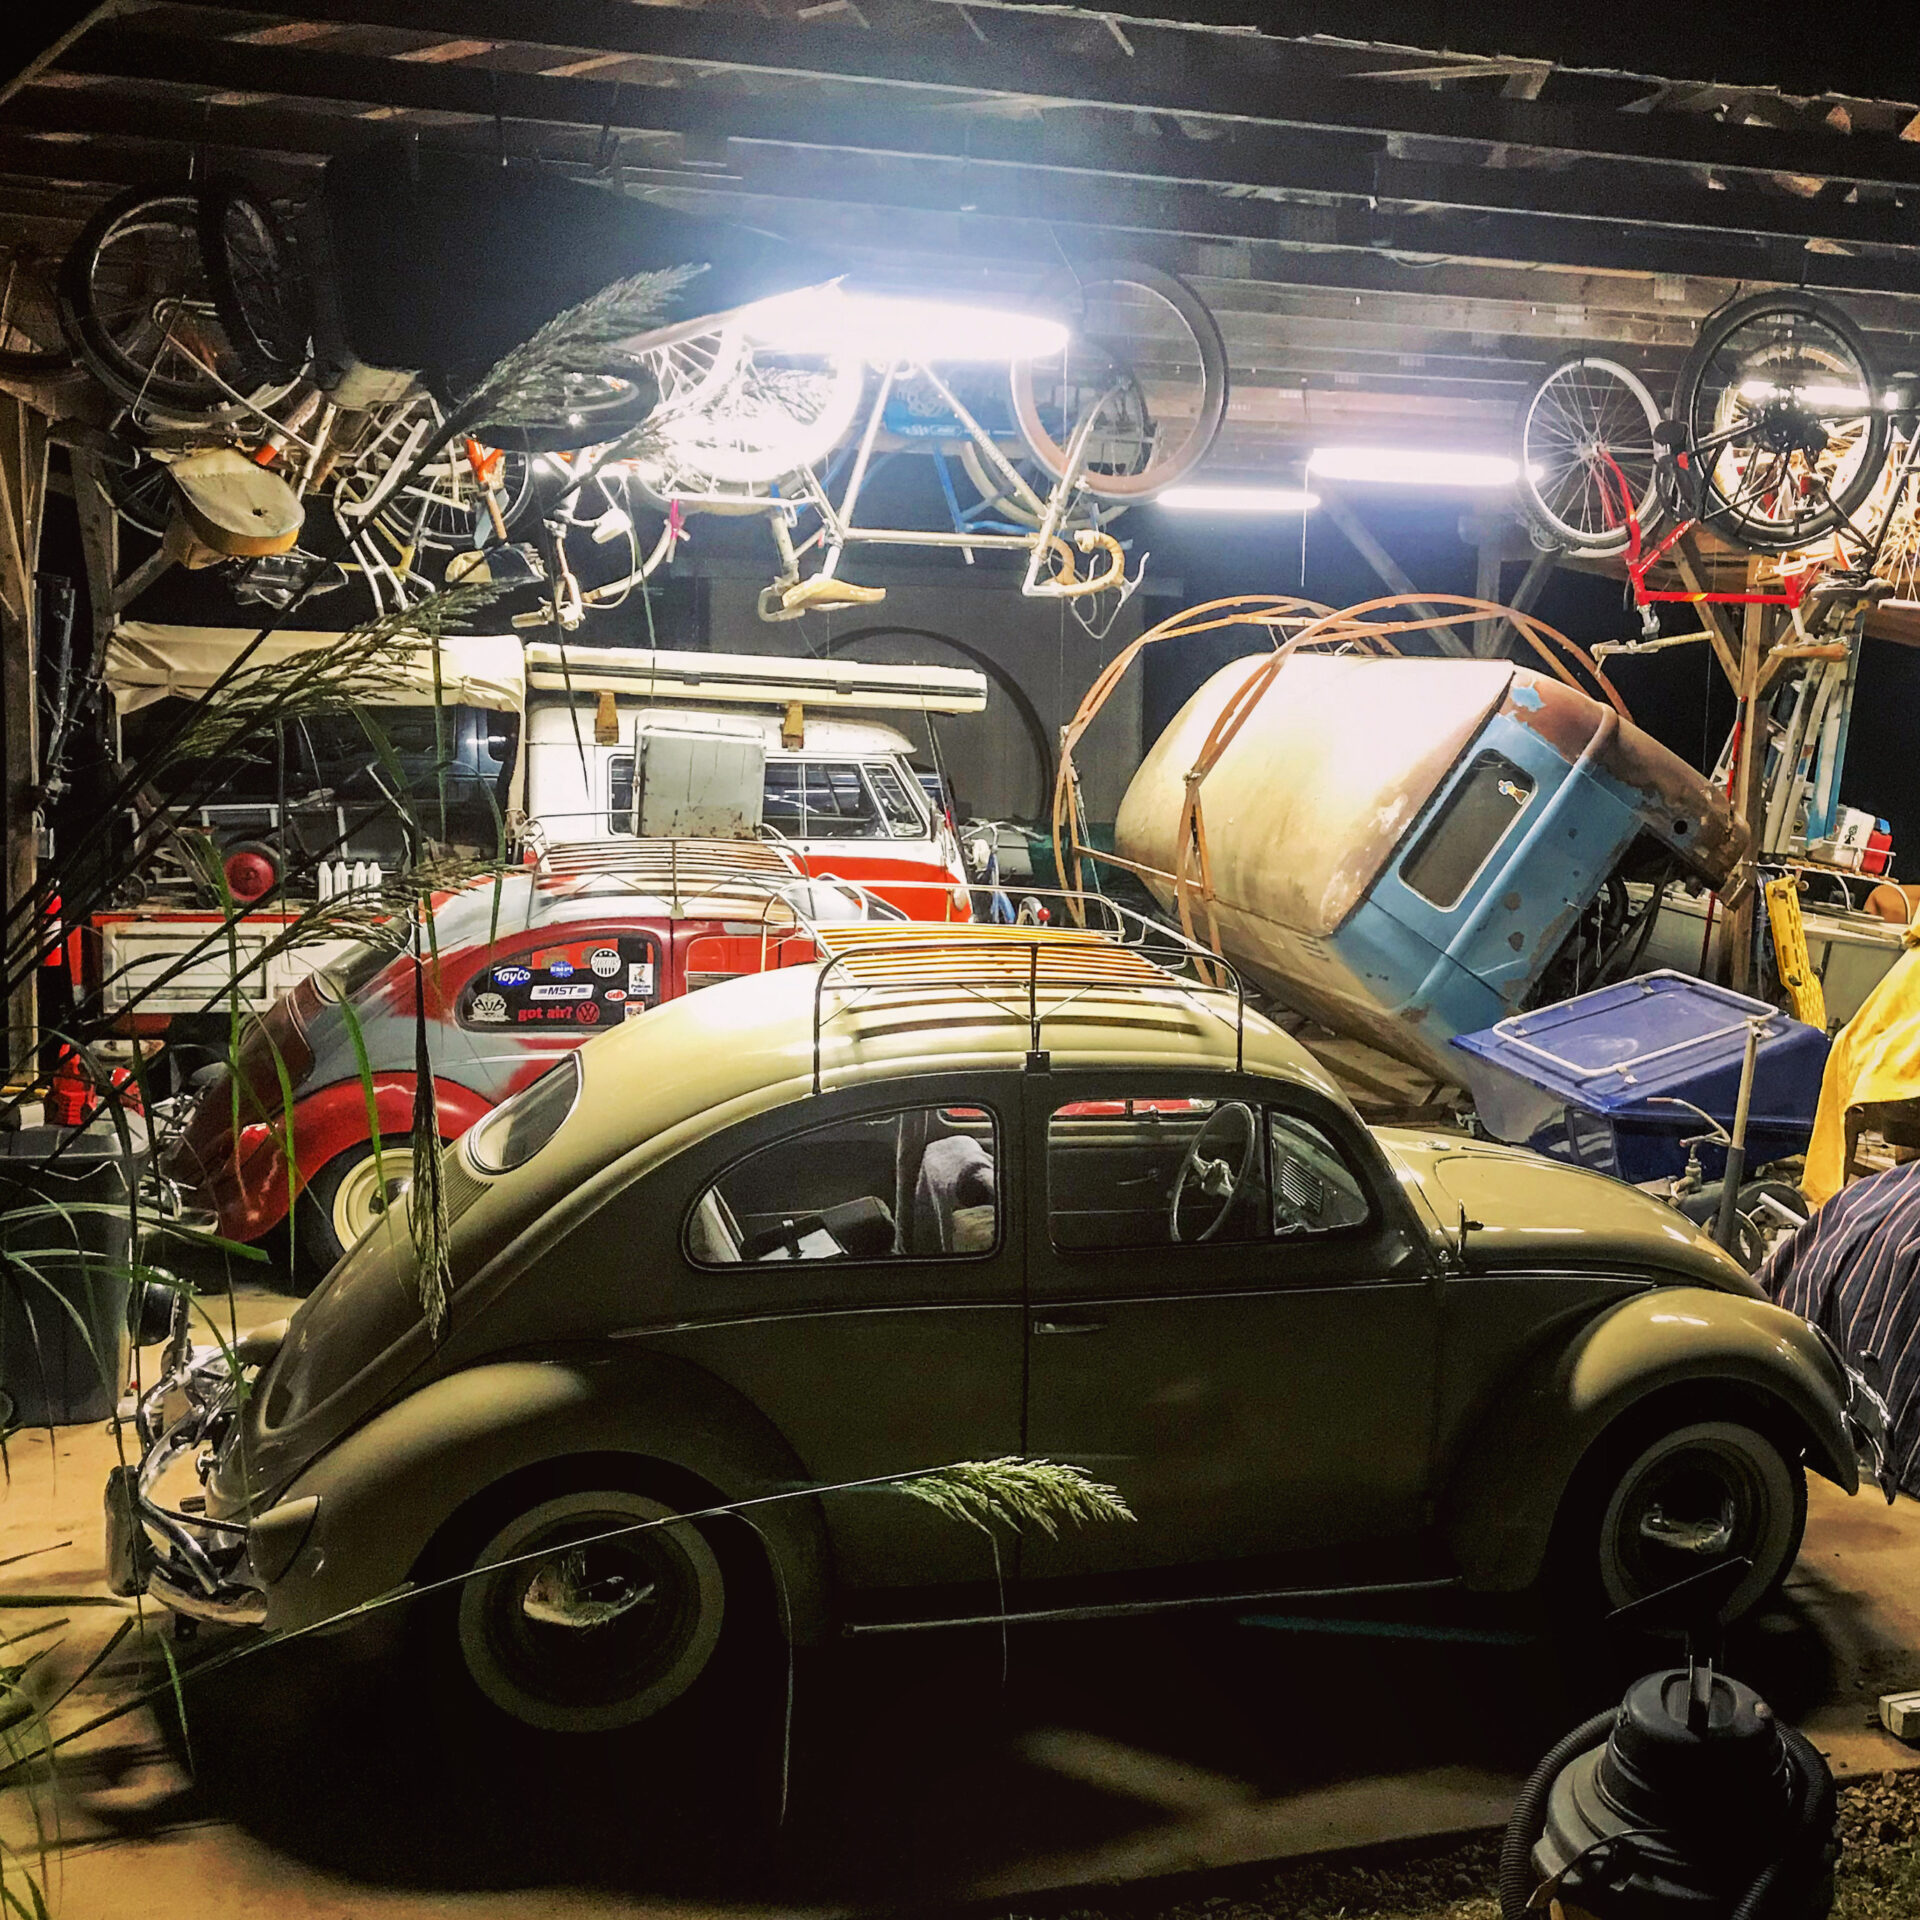 Vintage VW Shop - Junk In This Truck